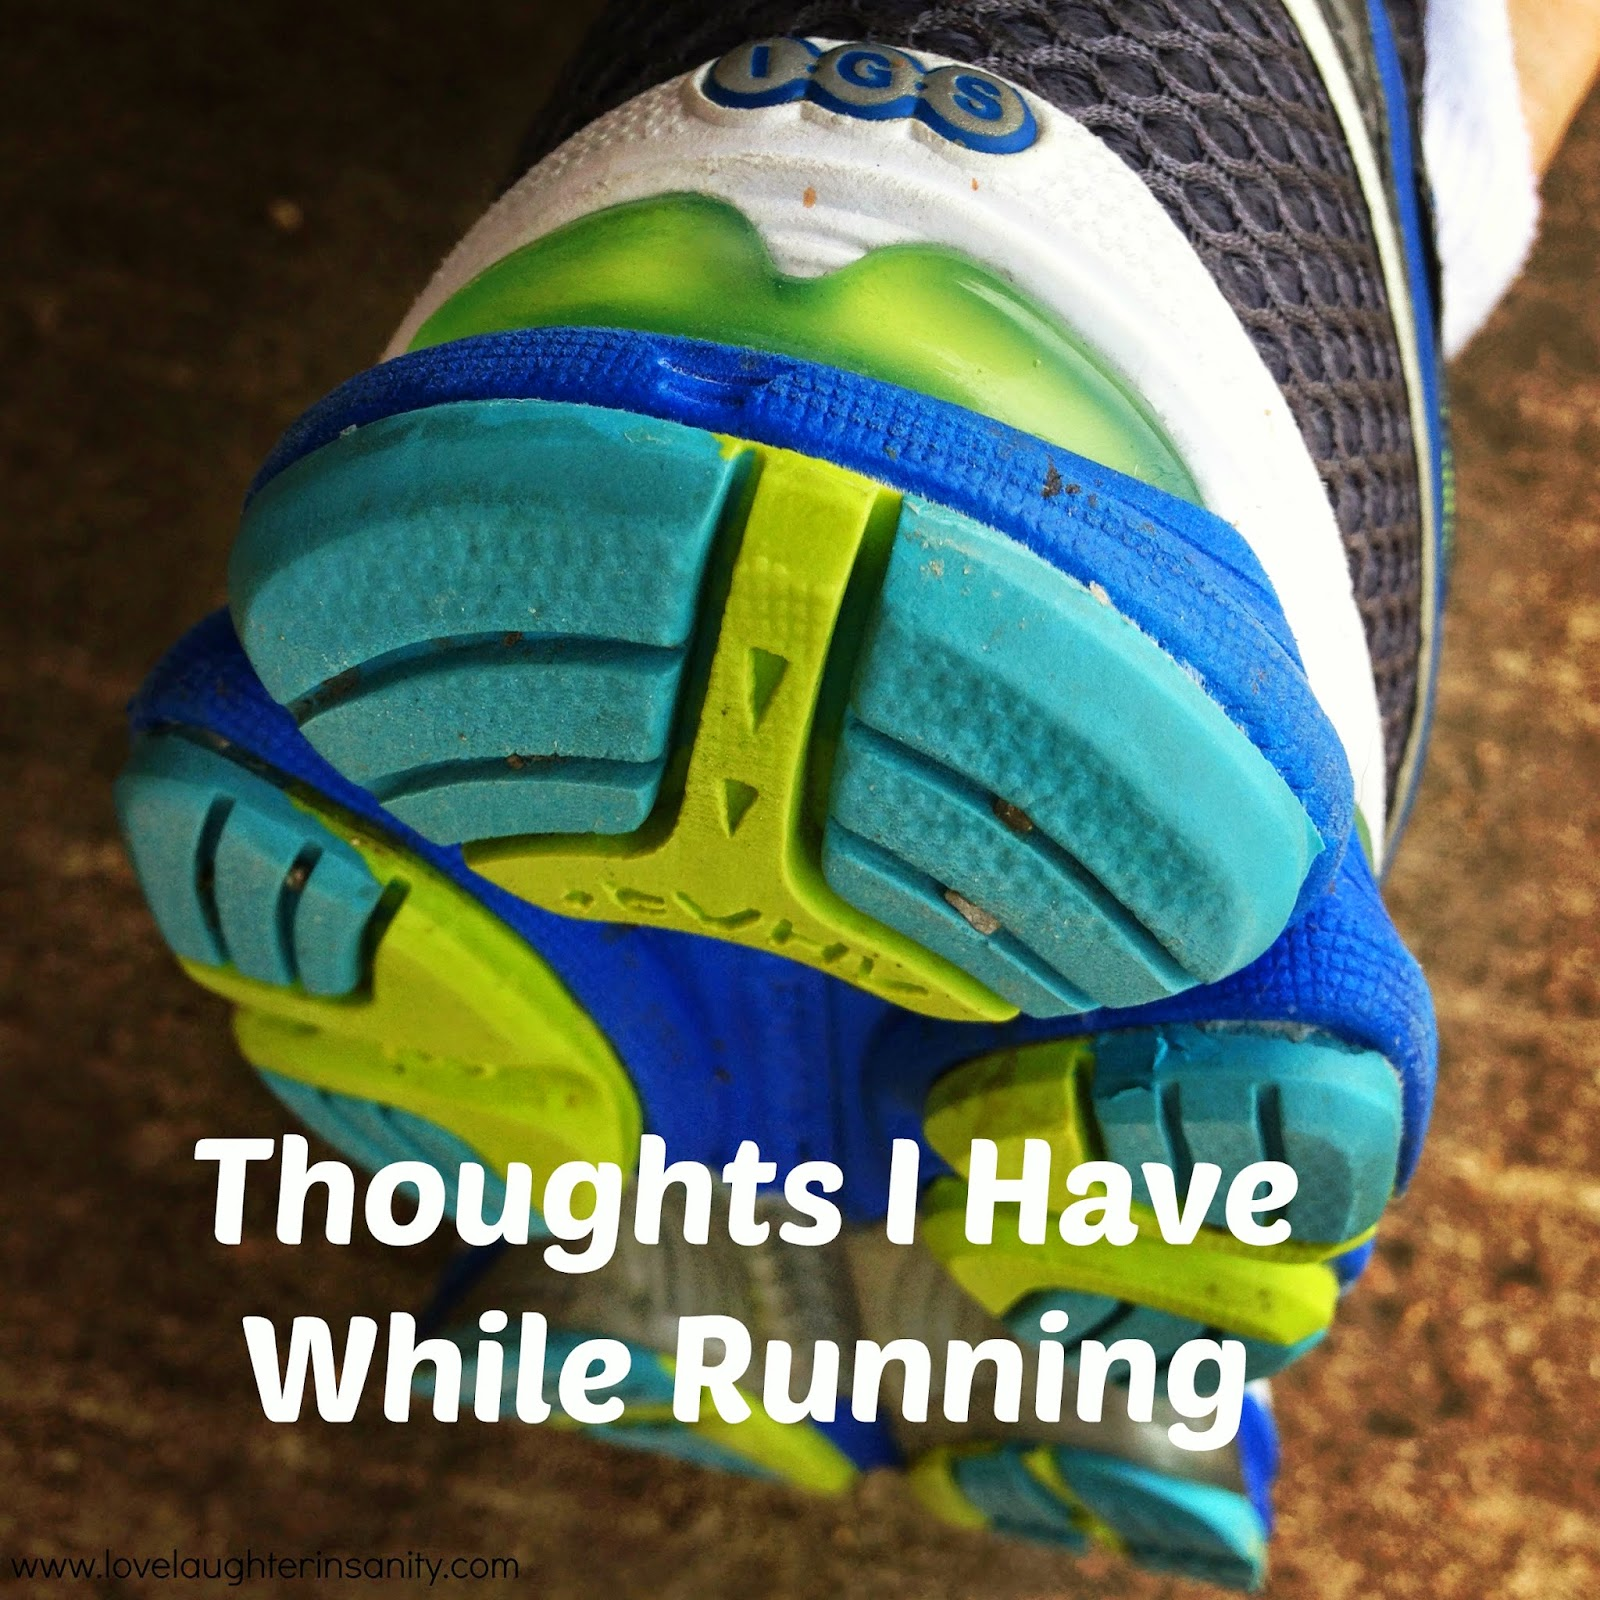 Thoughts I Have While Running